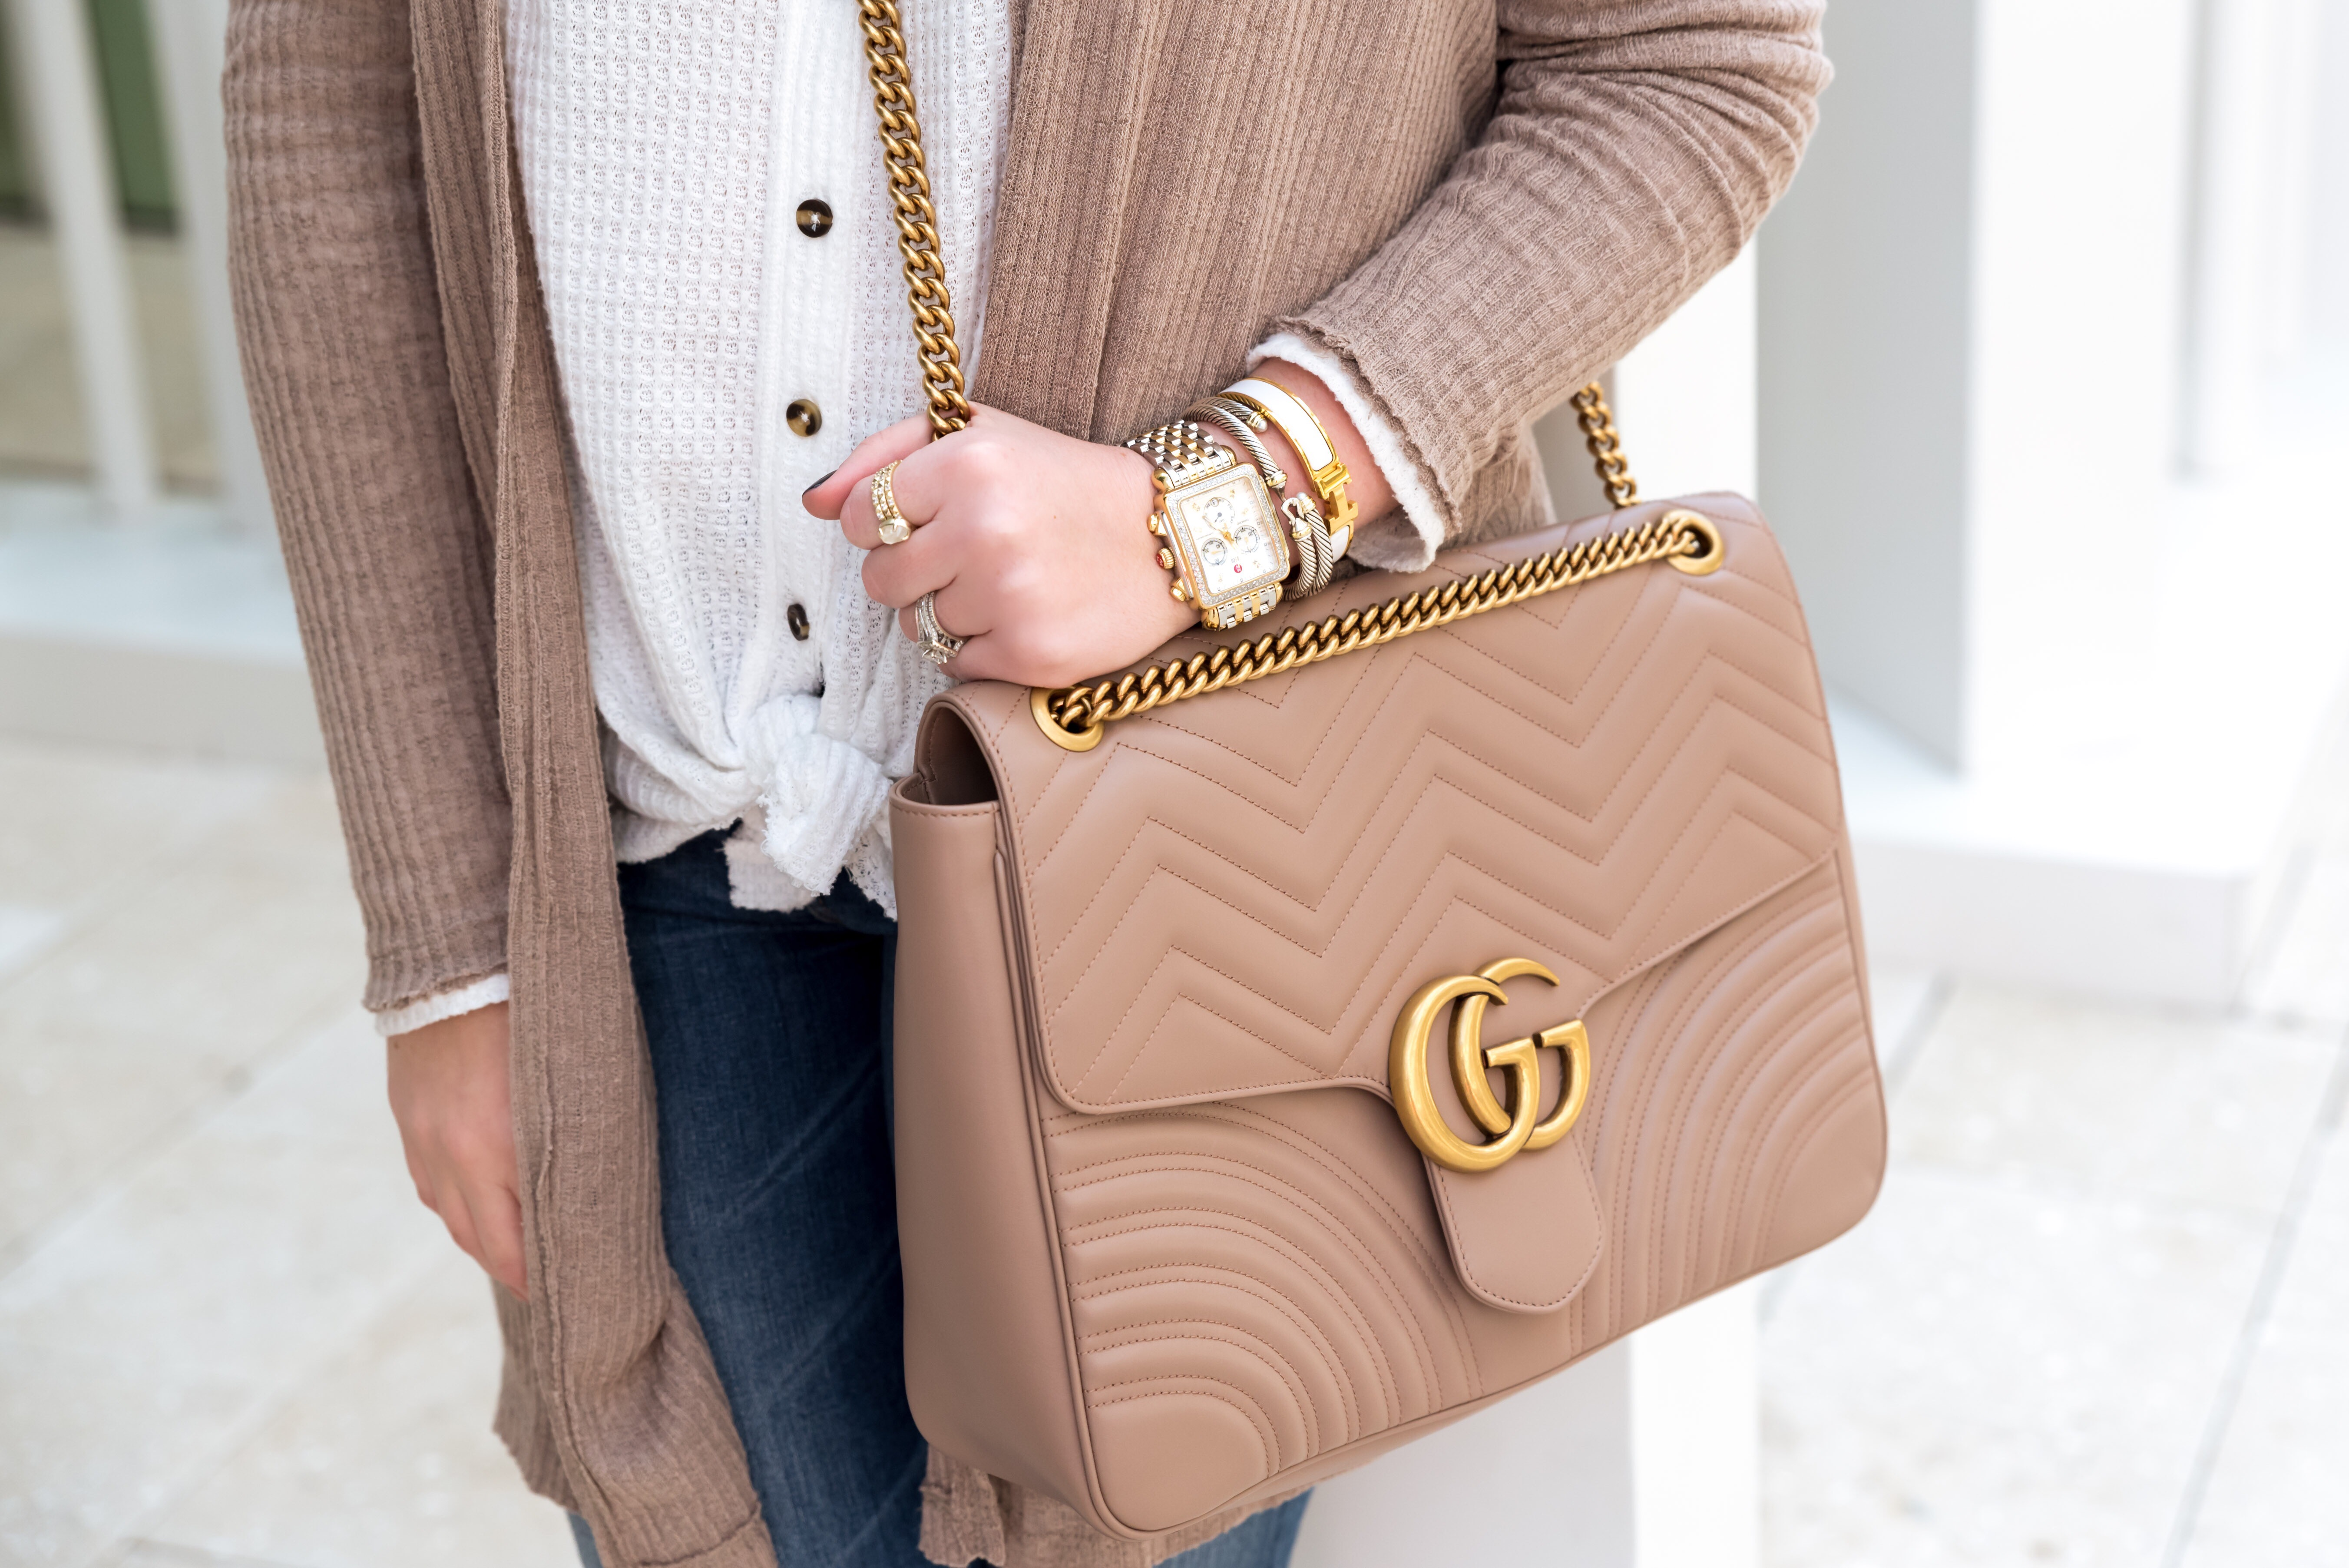 e9cf889d9ca8 Tips For Investing In Designer Handbags - The Fancy Things